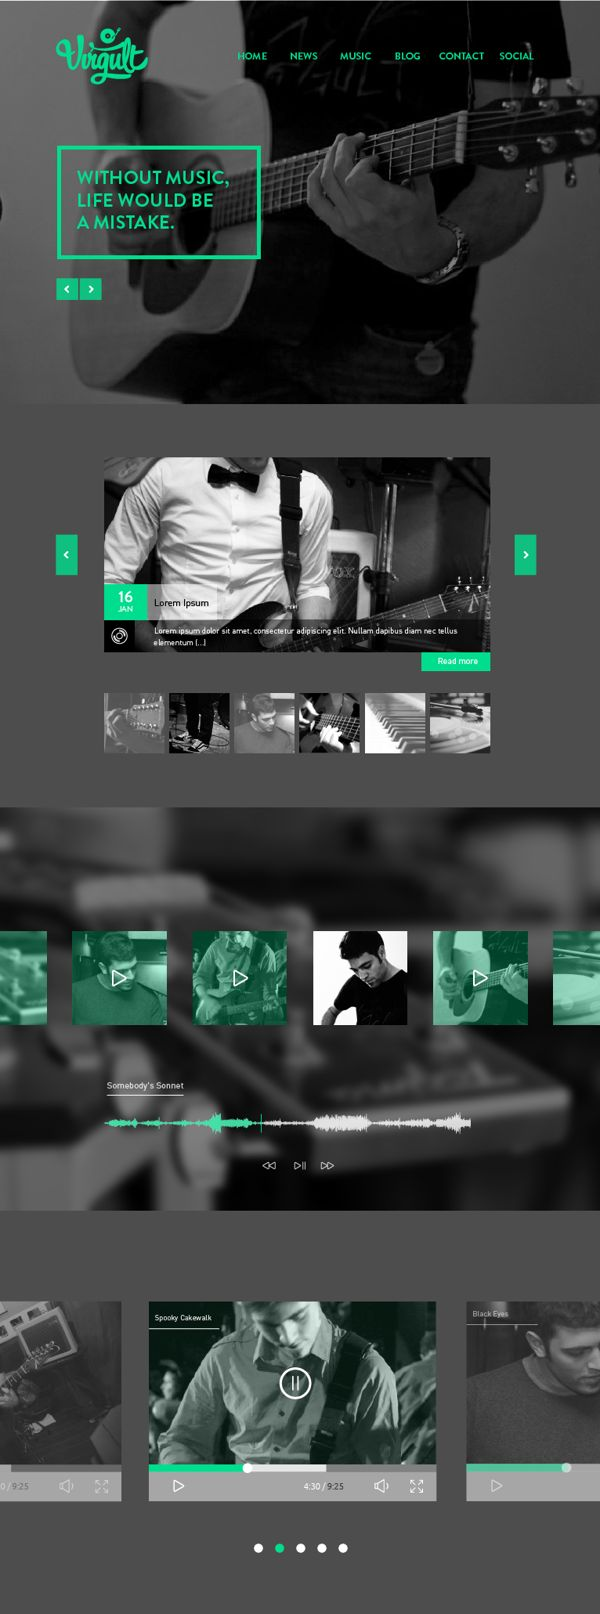 Unique Web Design, Virgult #WebDesign #Design…